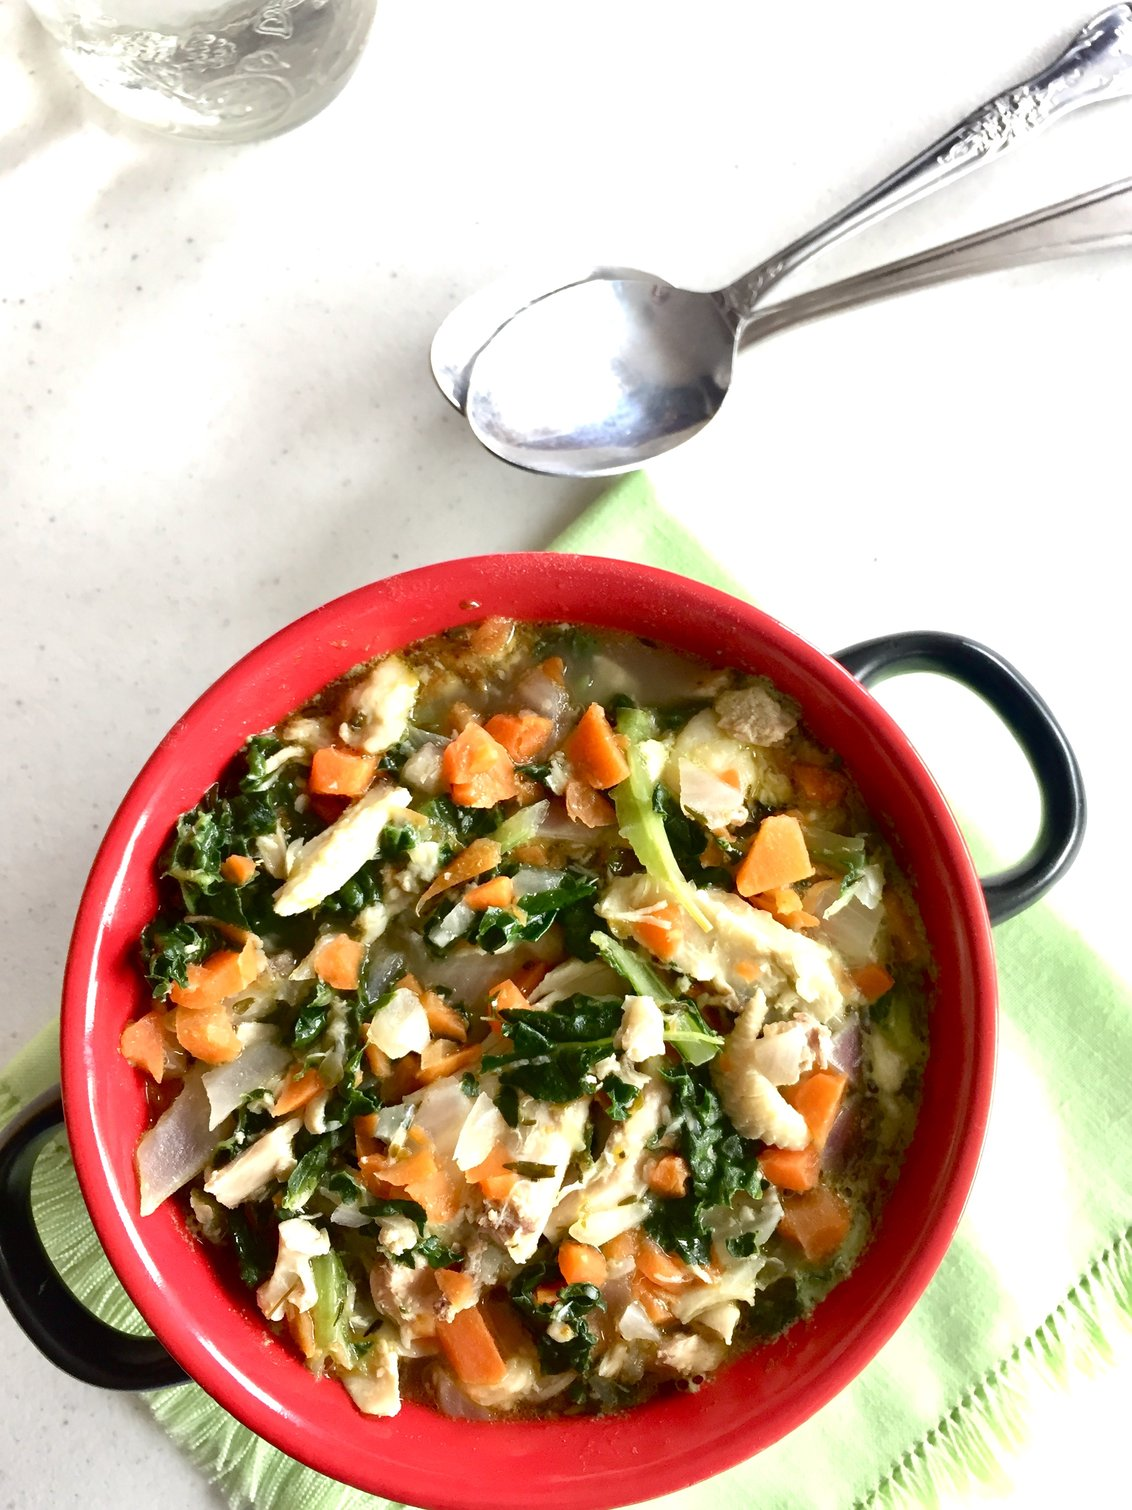 Creamy Kale and Chicken Soup (Vegan Option)